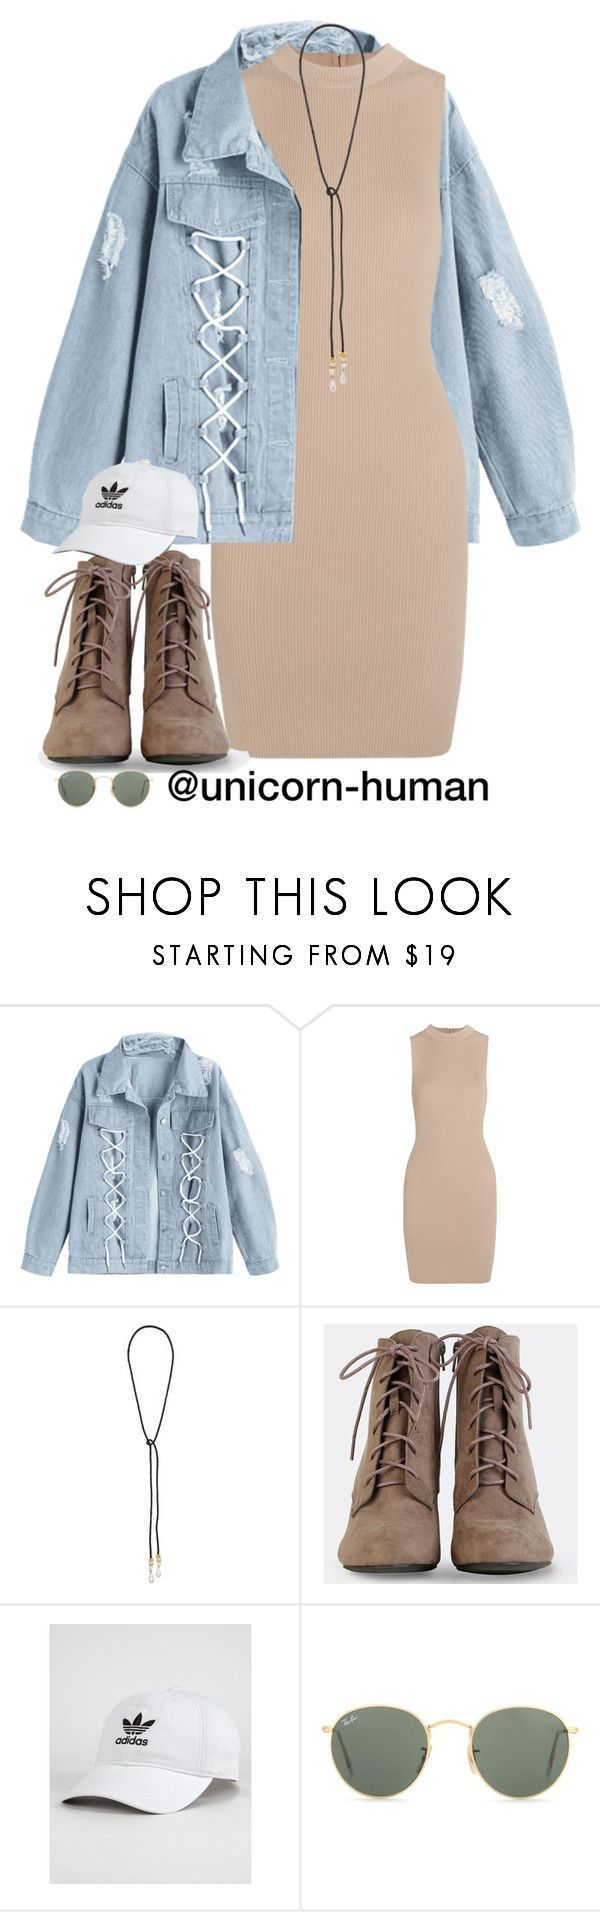 """Untitled #3055"" by unicorn-human on Polyvore featuring Tart, Lizzie Fortunato, adidas and Ray-Ban"